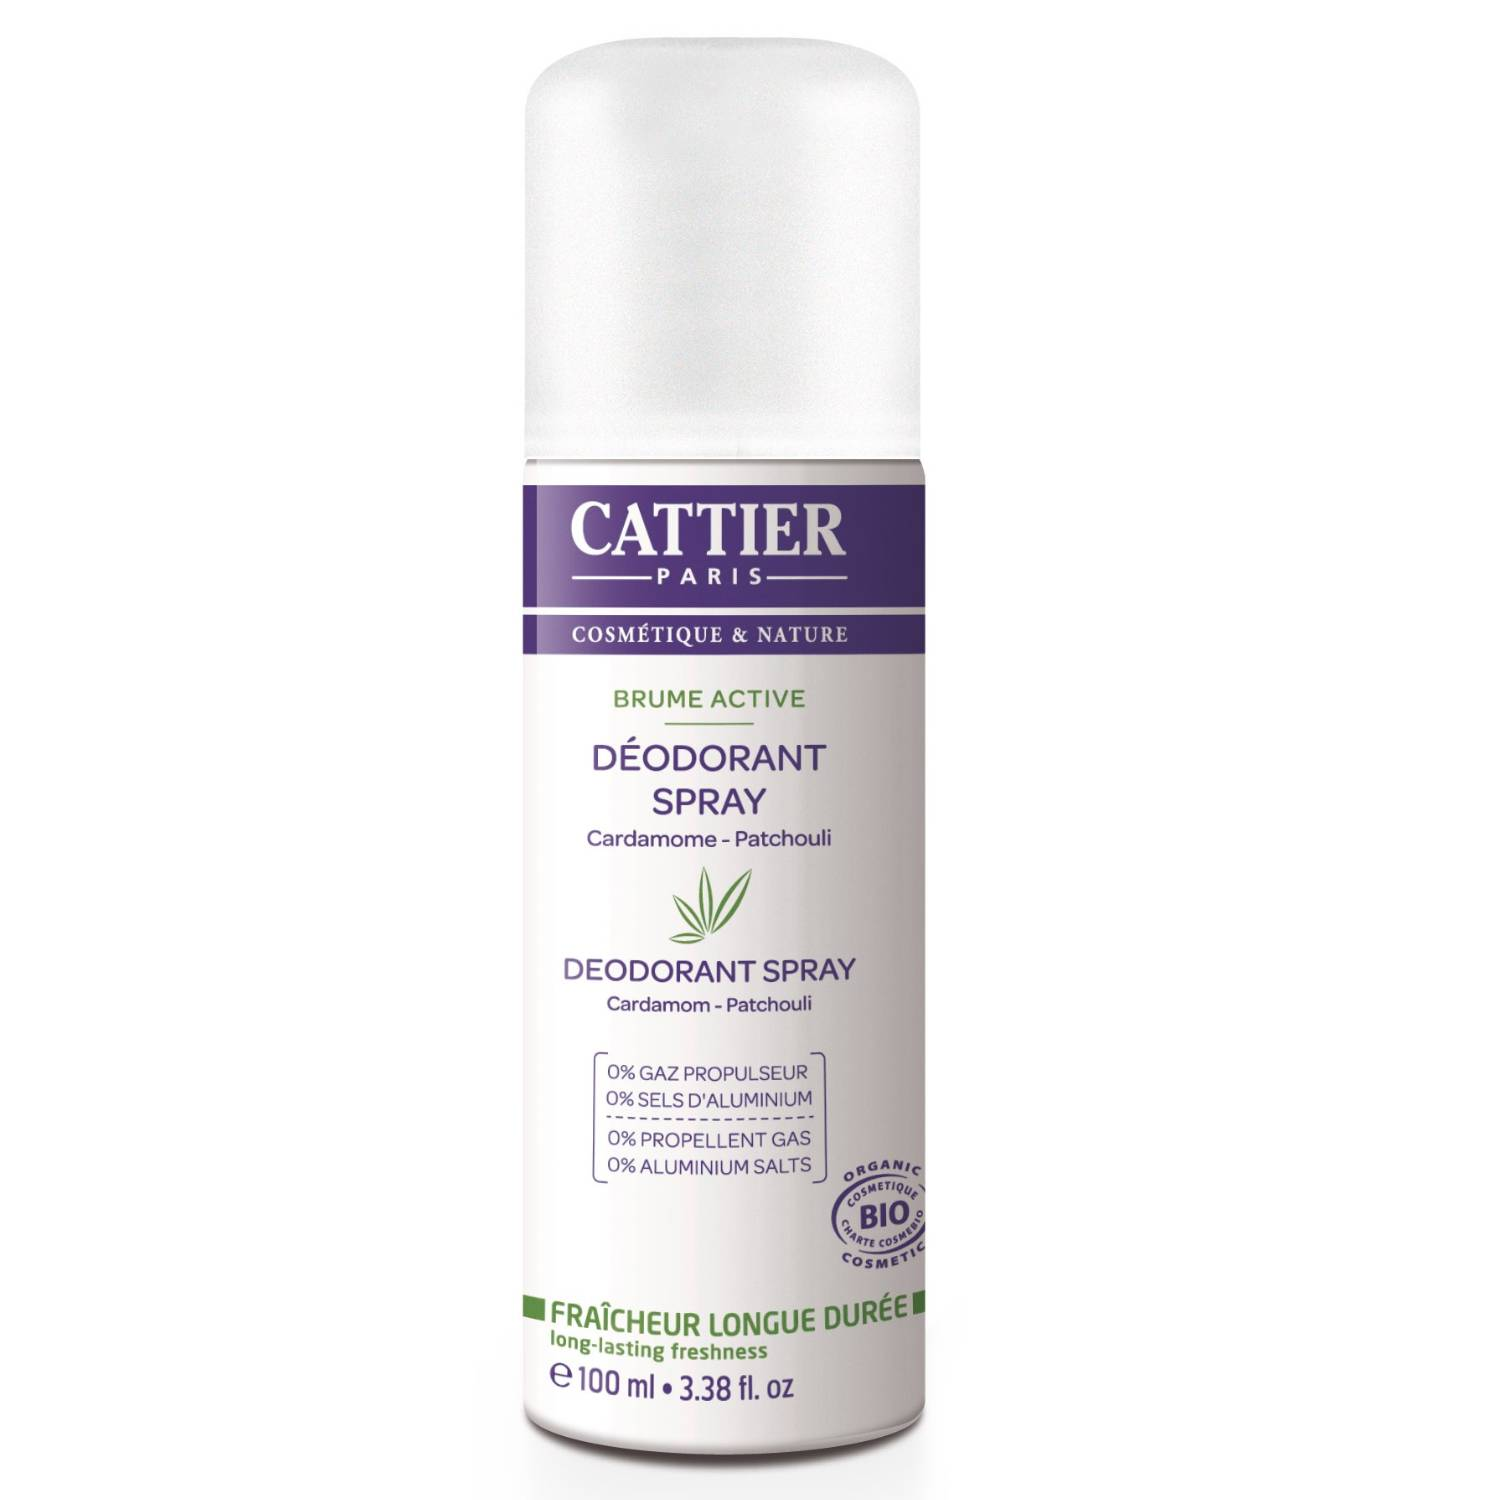 Cattier Desodorante spray Brume Active para mujer